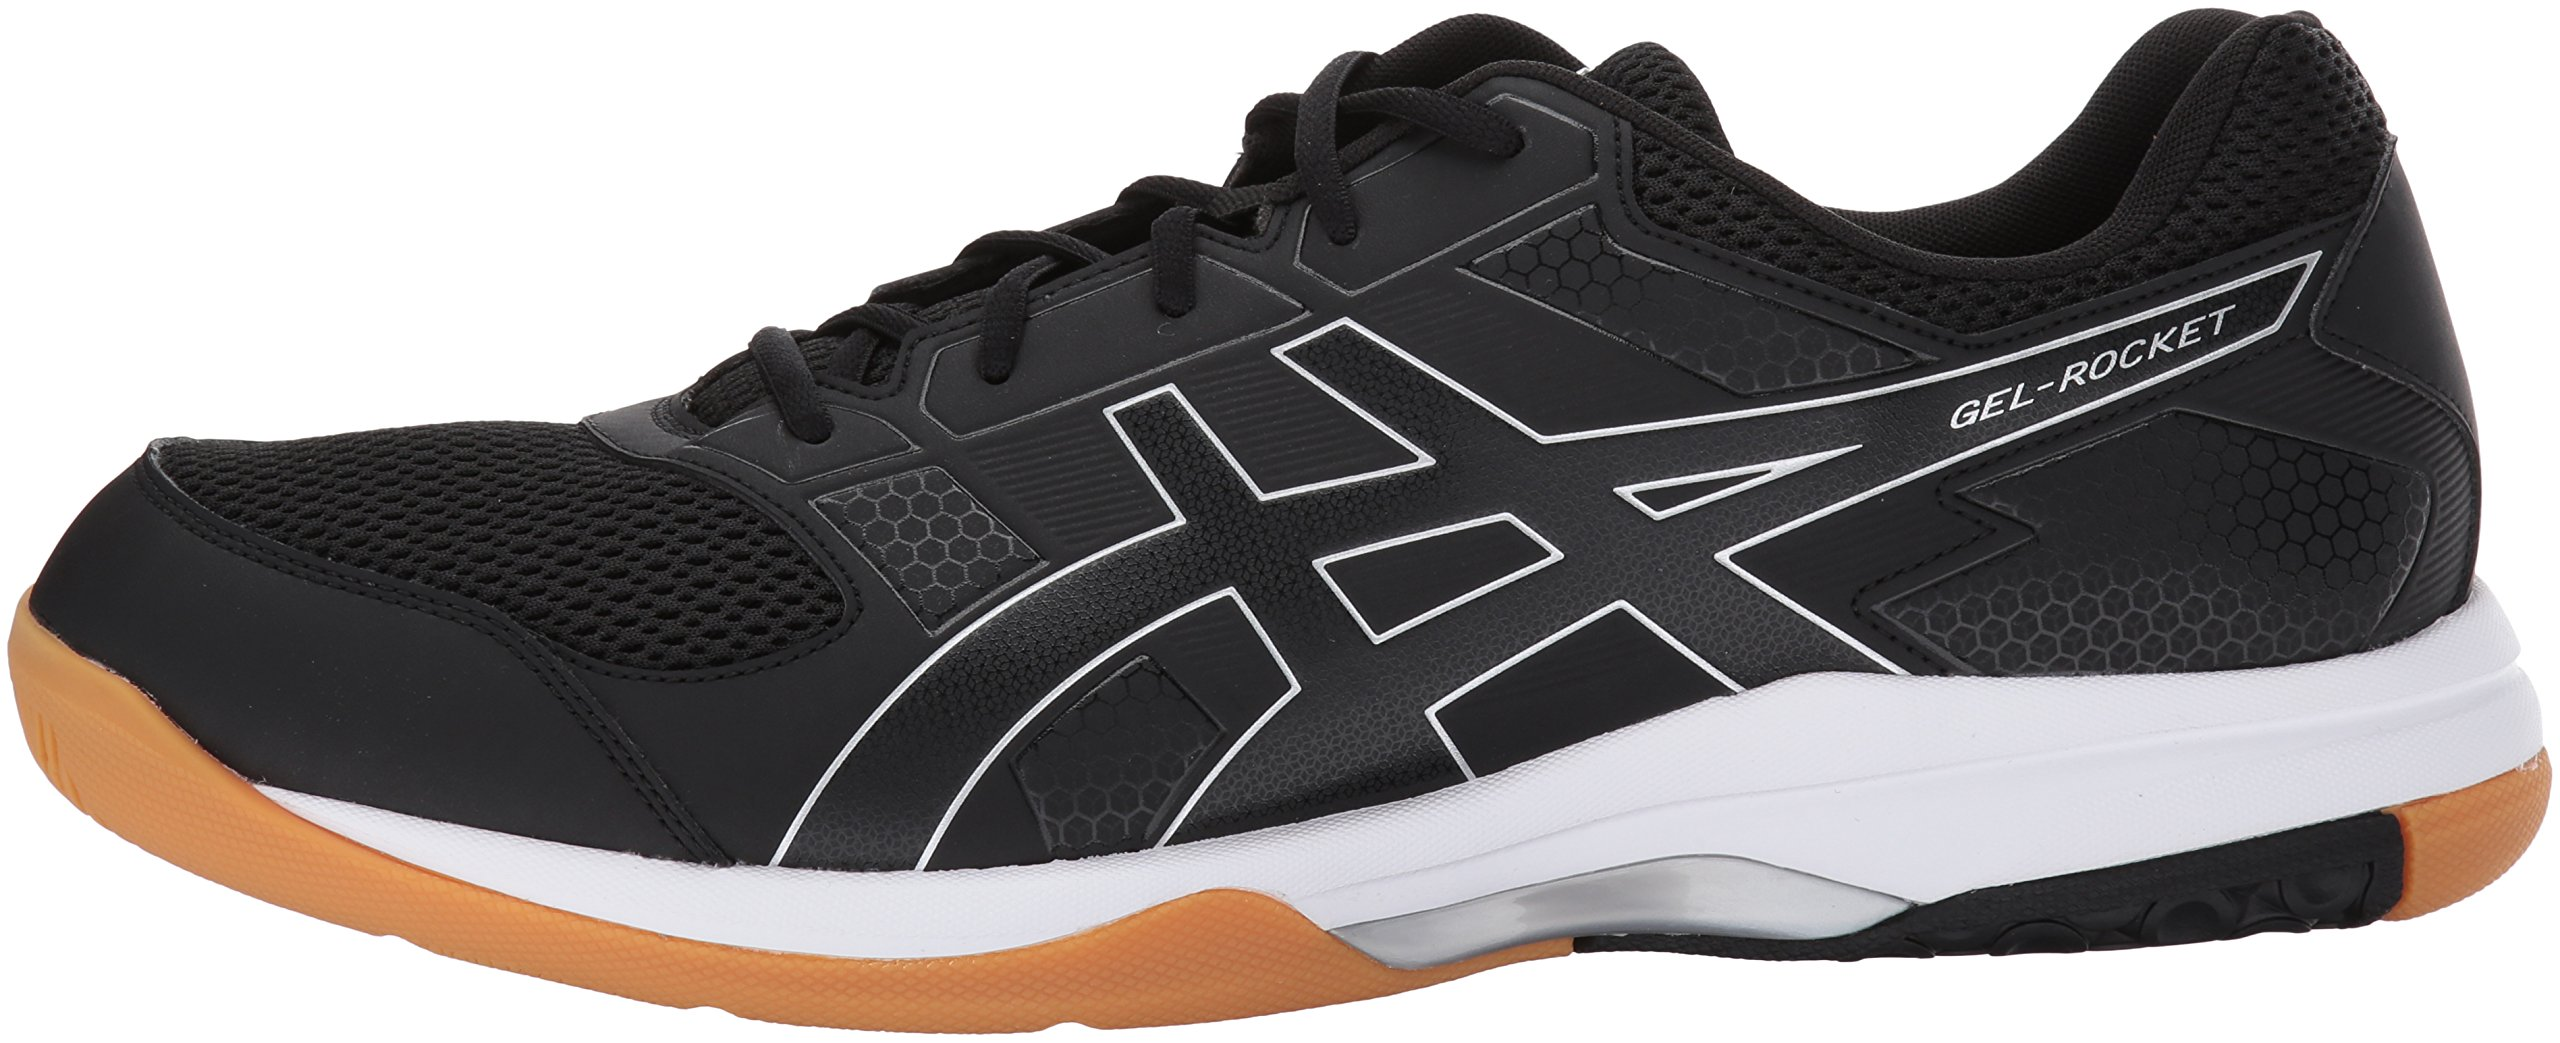 ASICS Mens Gel-Rocket 8 Volleyball Shoe Black/White, 7.5 Medium US by ASICS (Image #5)